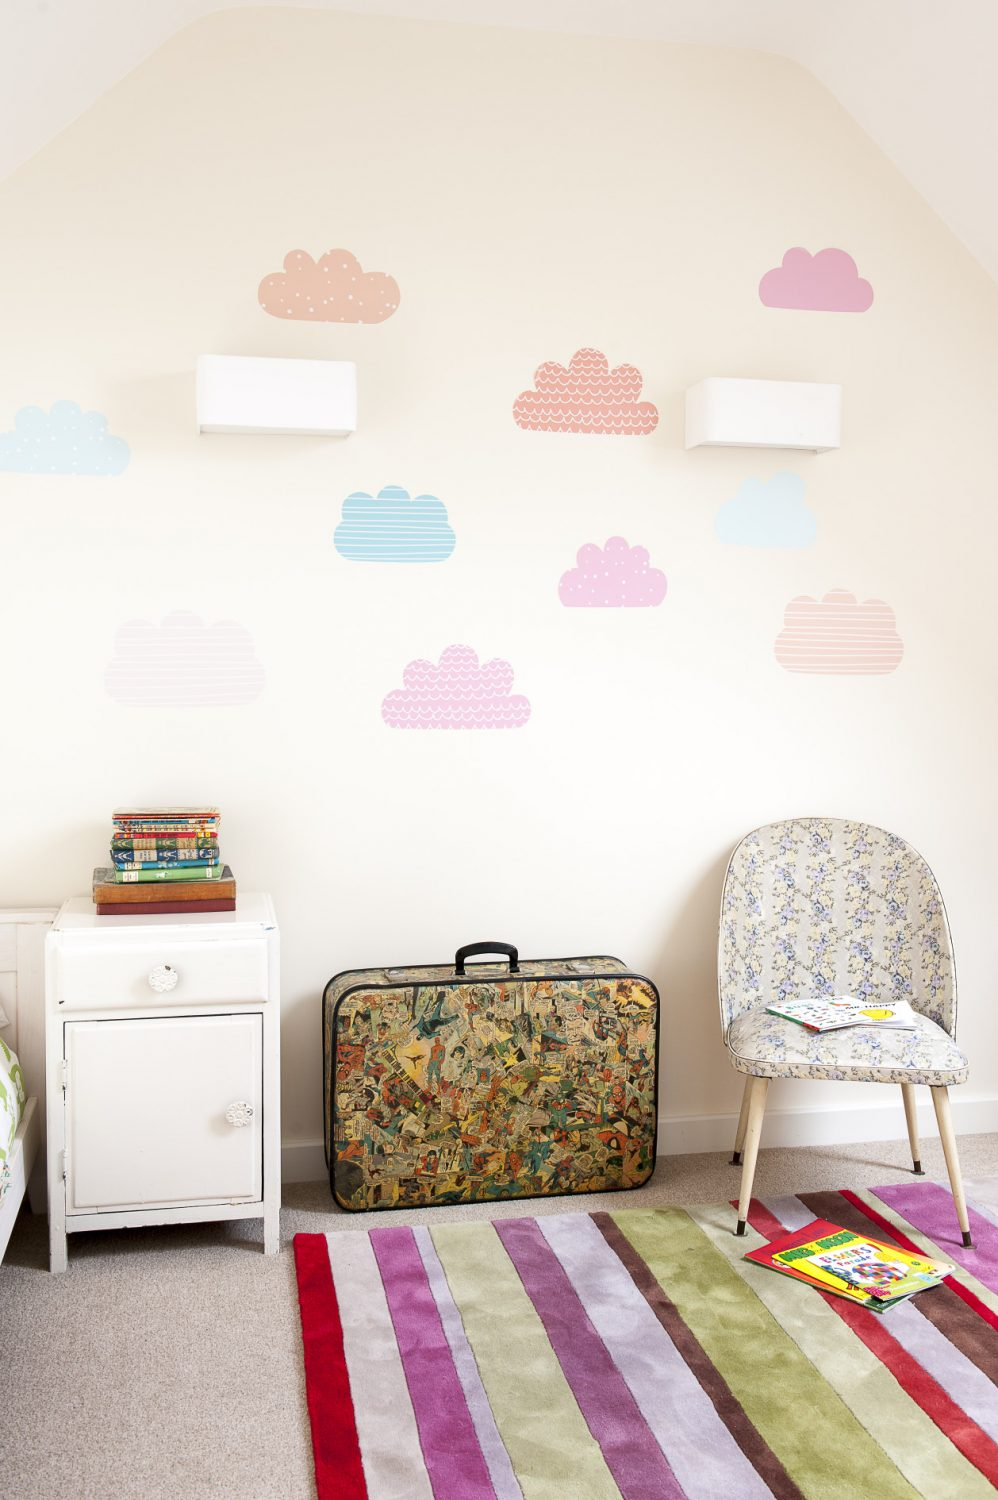 Pastel paper clouds float across one wall of the children's guest room at the top of the house